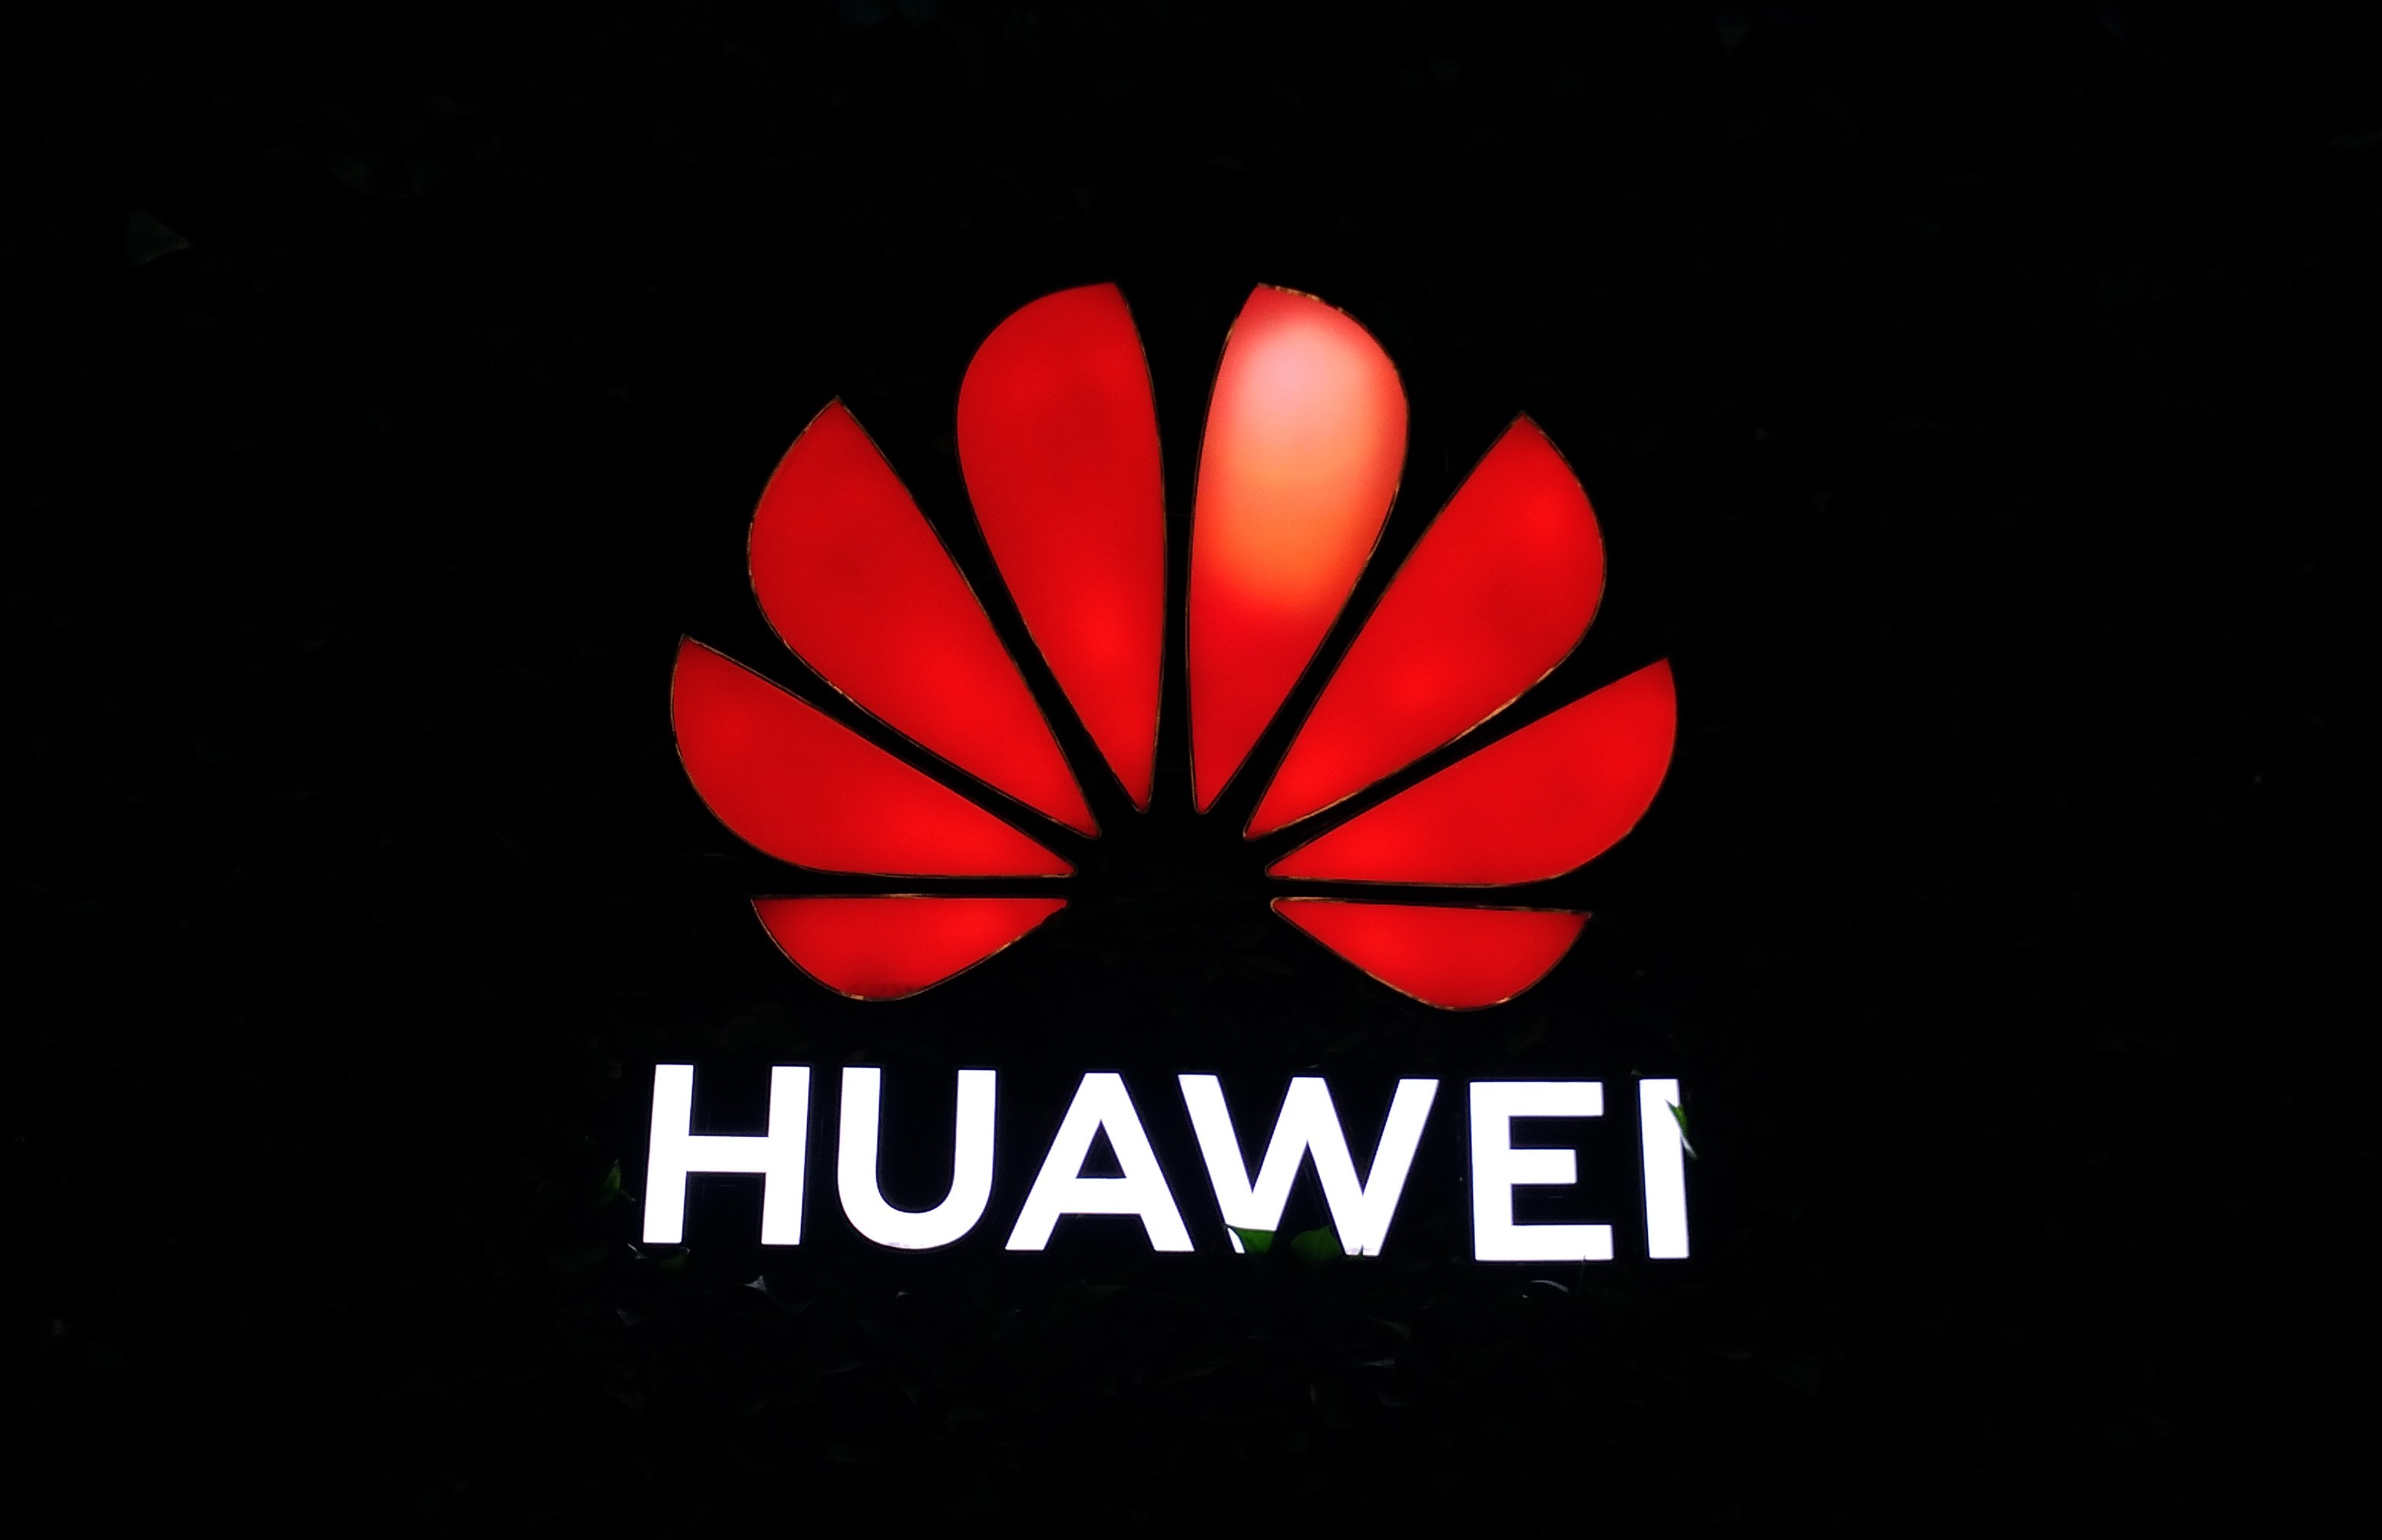 Huawei Signs Deal with Lyceum for ICT Academy Partnership